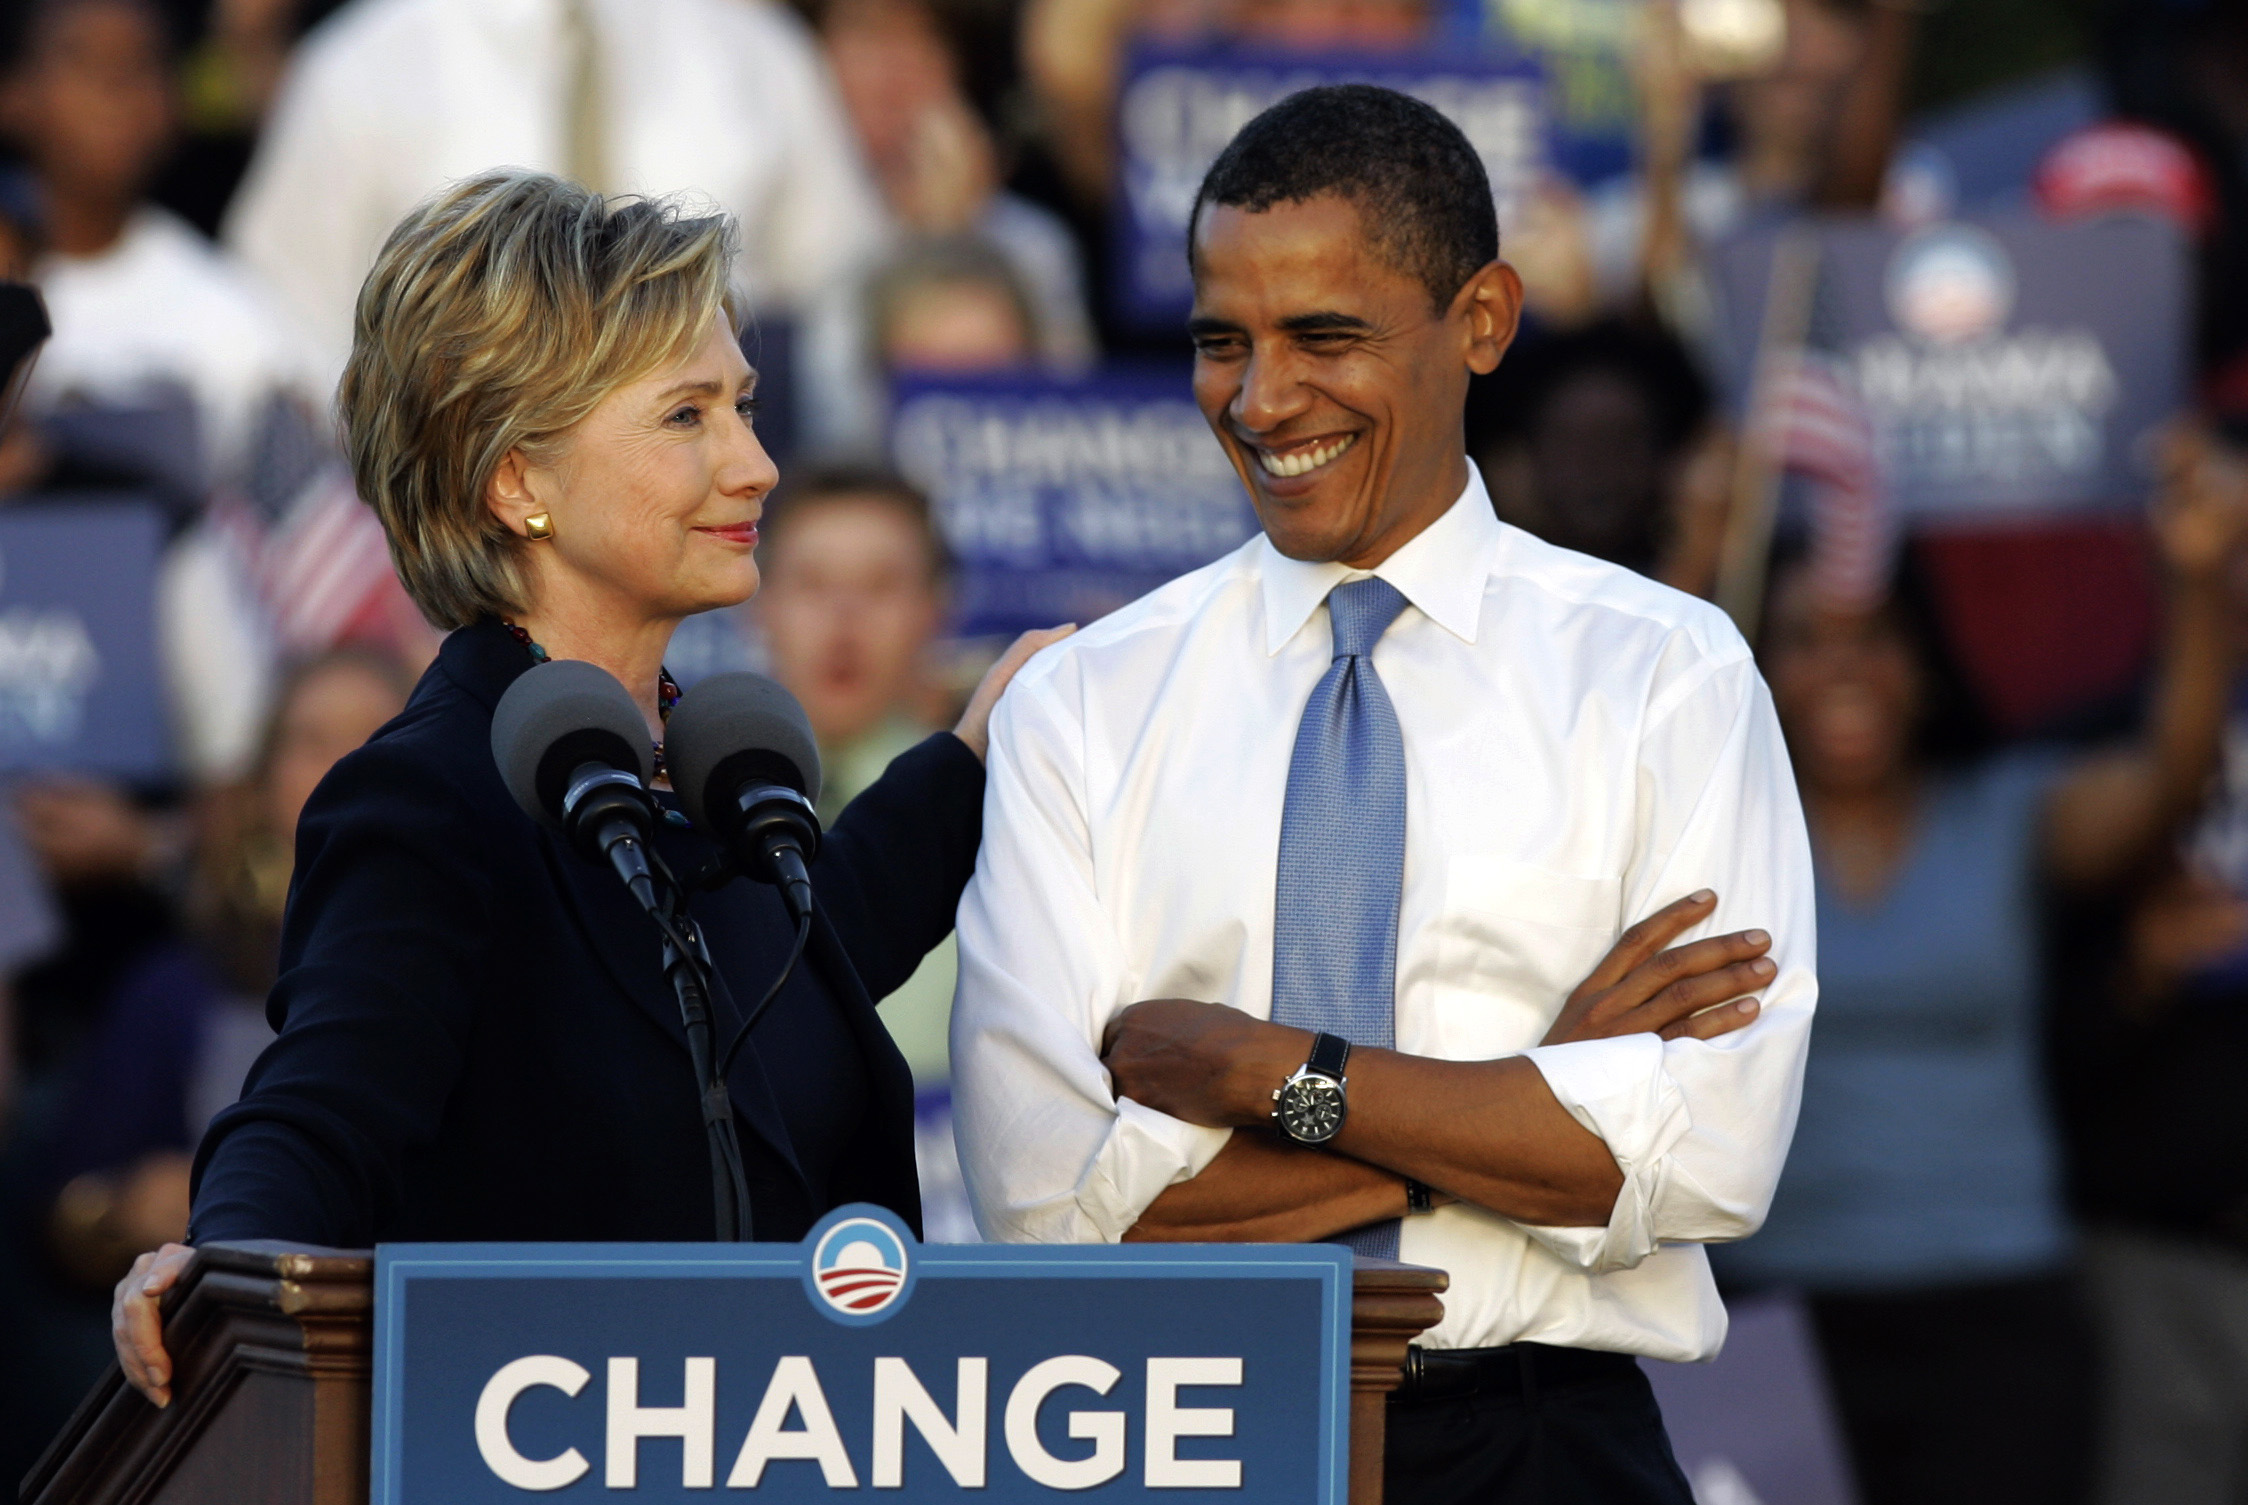 October 2008 Then-Sen. Hillary Clinton, D-N.Y., delivers a speech supporting then-Democratic presidential candidate Sen. Barack Obama, D-Ill., at a rally in Orlando, Fla. on  Oct. 20, 2008.